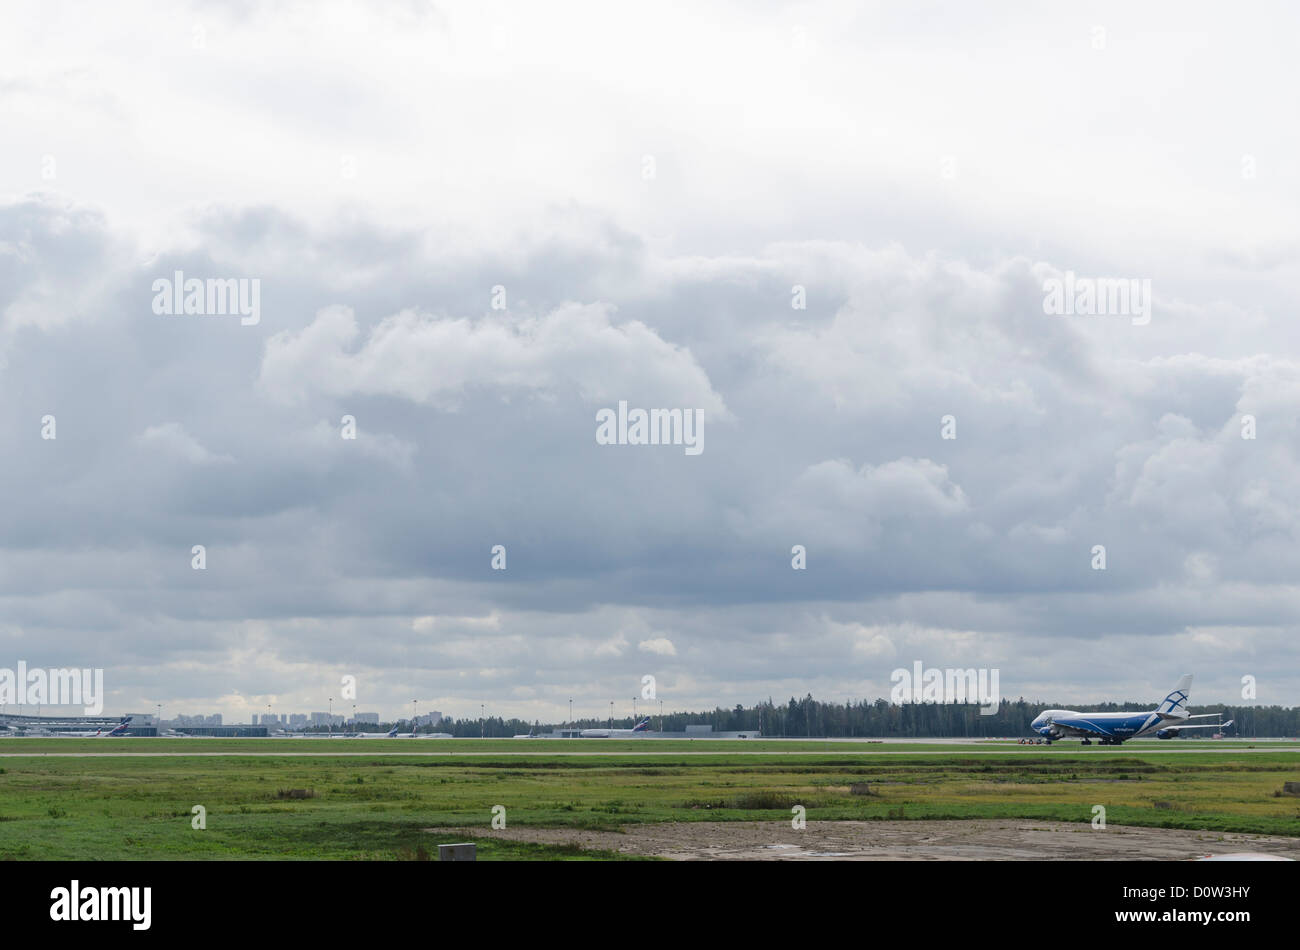 jet plane airport airfield cloudy clouds horizont - Stock Image